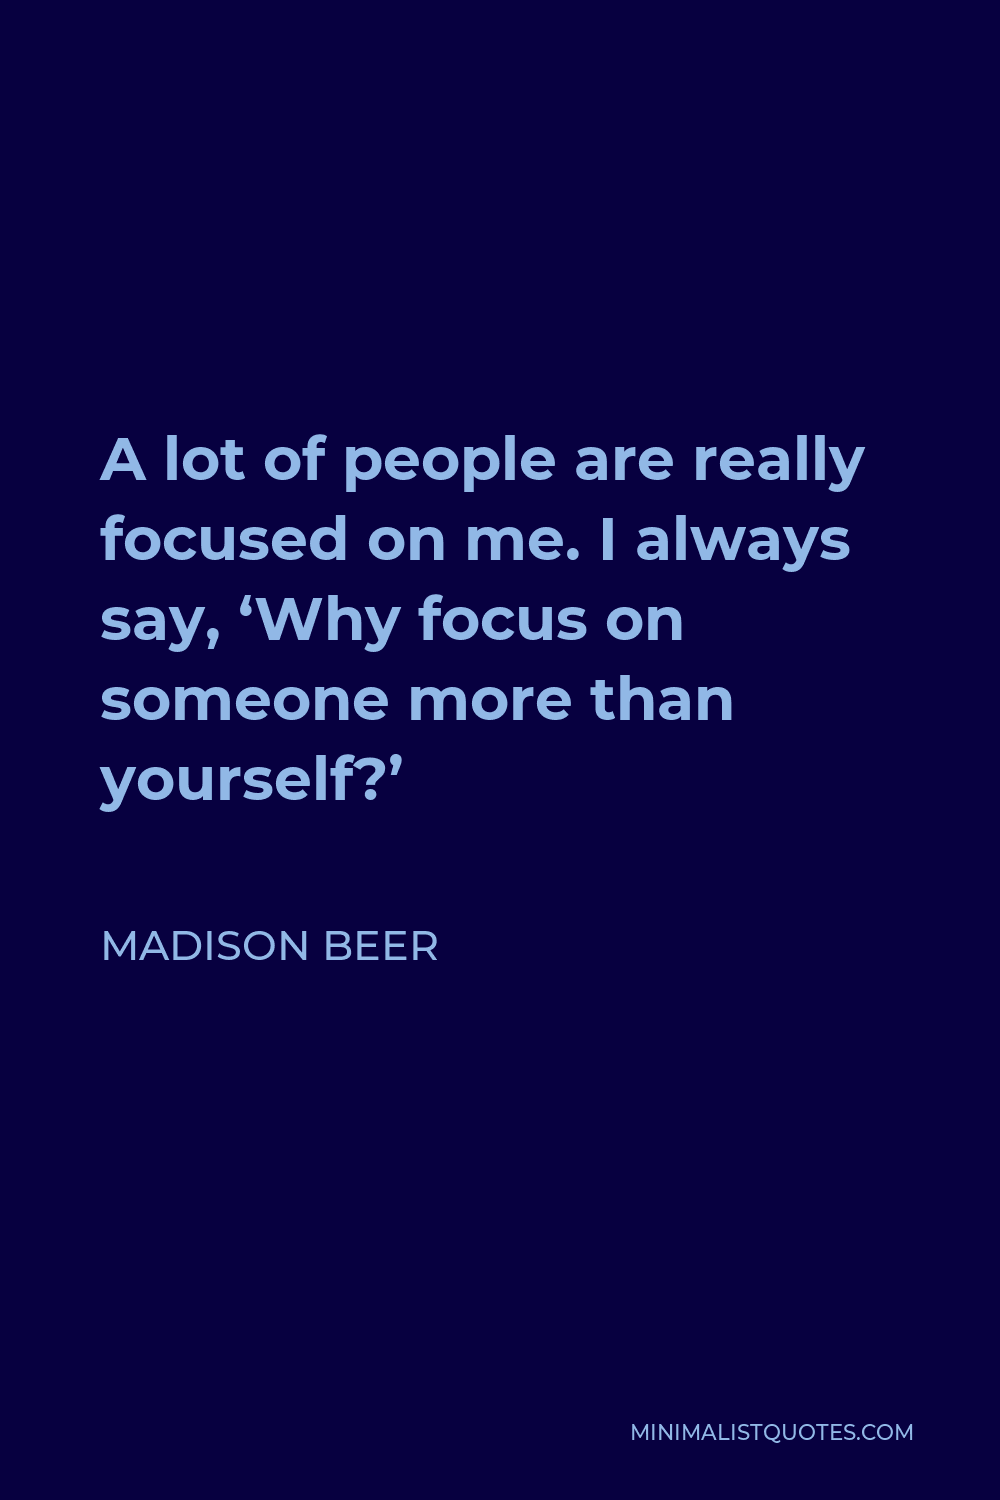 Madison Beer Quote - A lot of people are really focused on me. I always say, 'Why focus on someone more than yourself?'